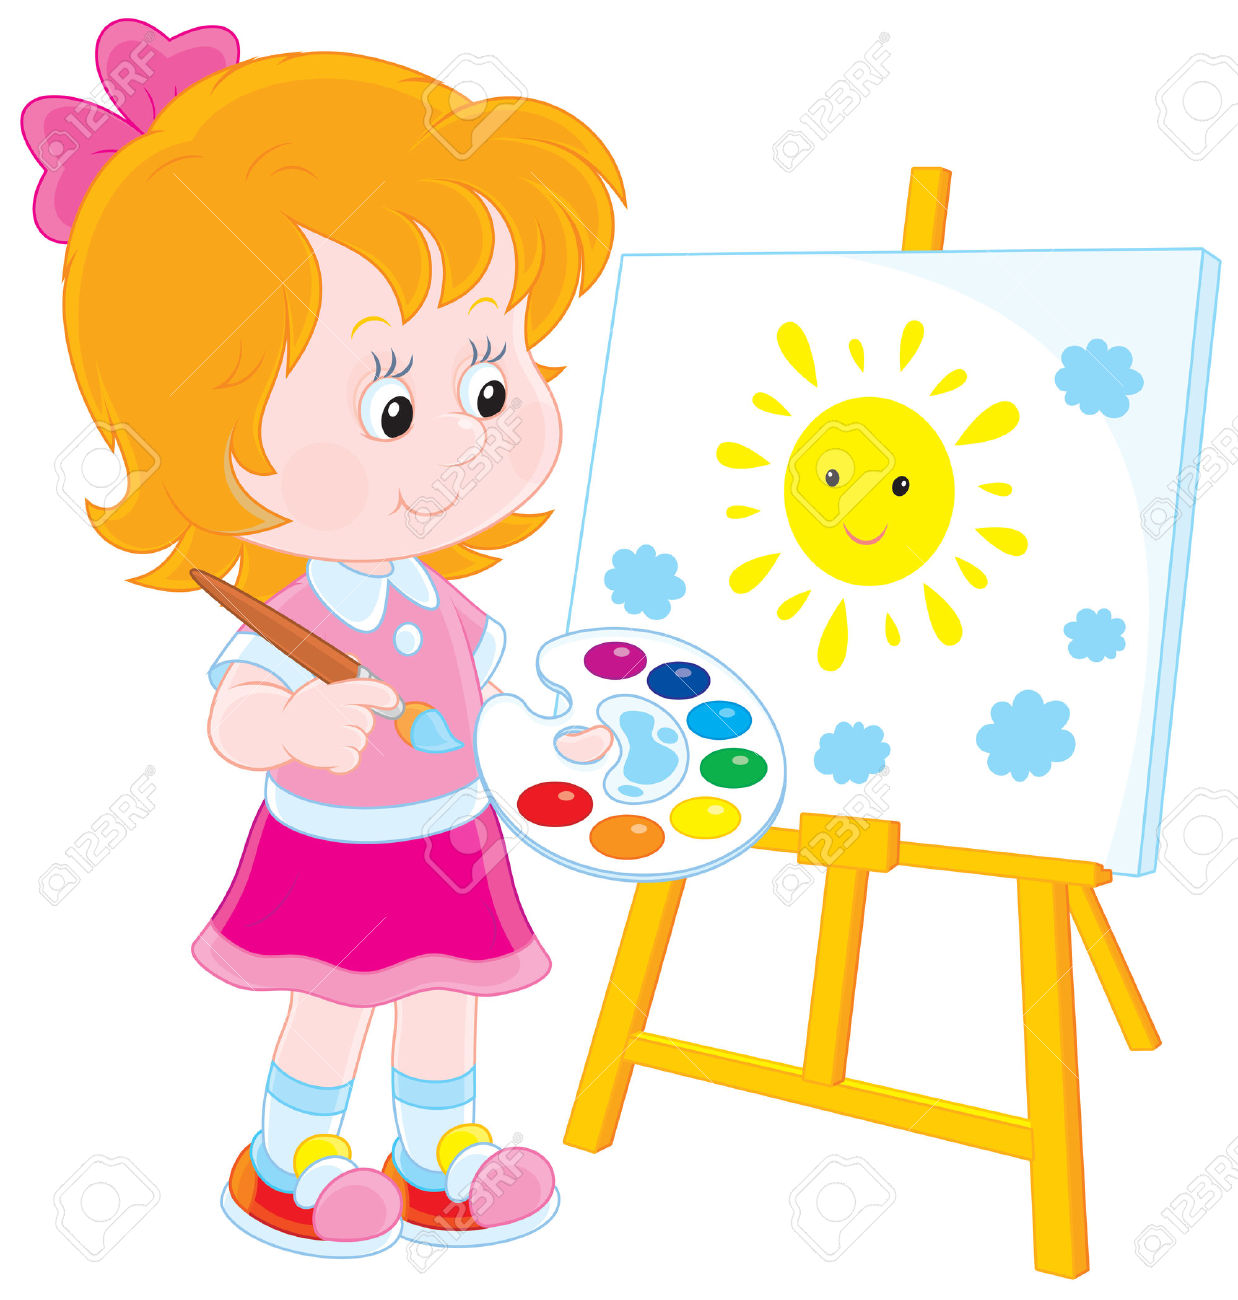 4508 easel stock vector illustration and royalty free easel clipart - Children Drawing Pictures For Painting